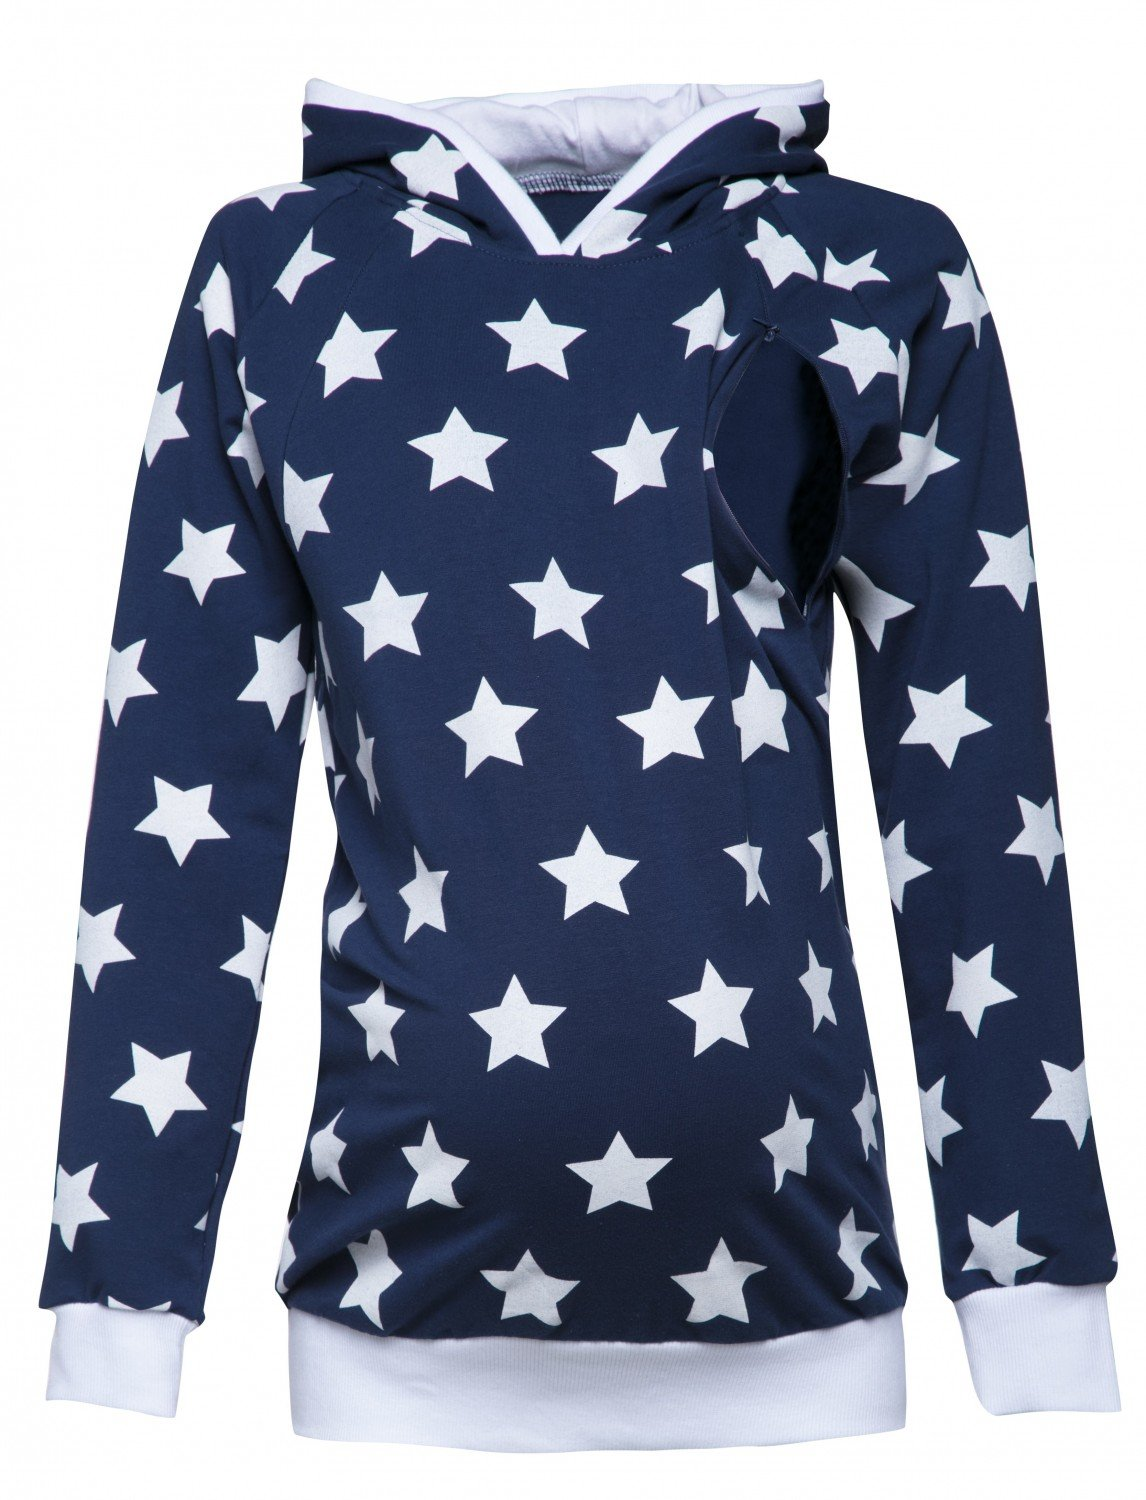 Happy Mama. Women's Maternity Nursing Hoodie Breastfeeding Stars Design. 710p nursingtop_710